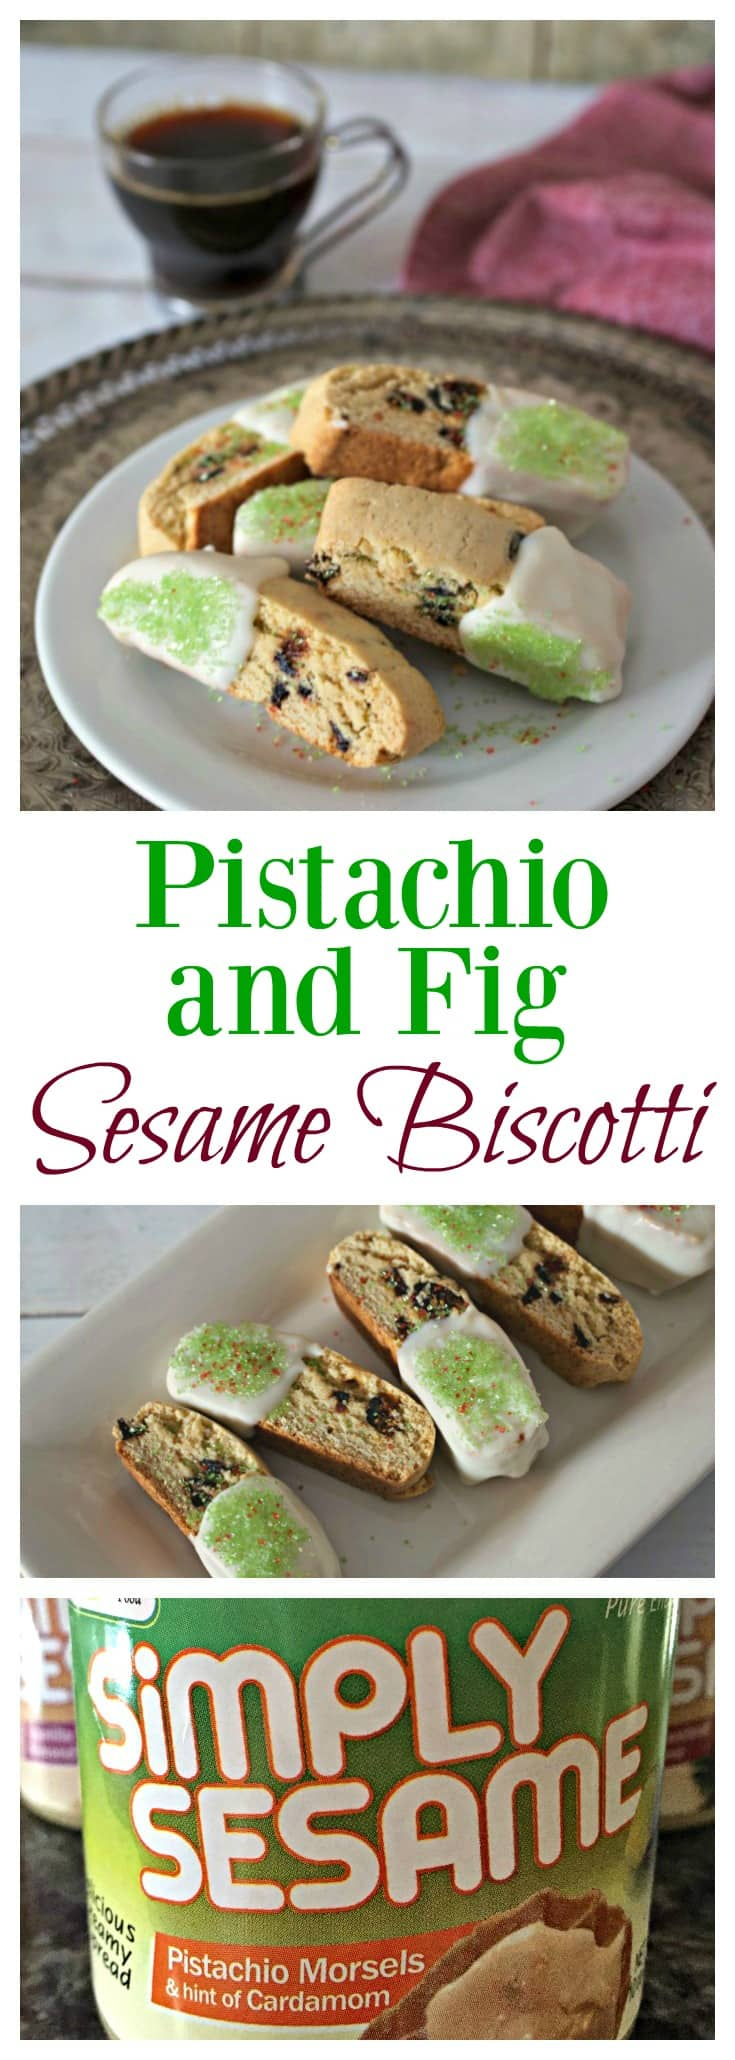 Pistachio and Fig Sesame Biscotti